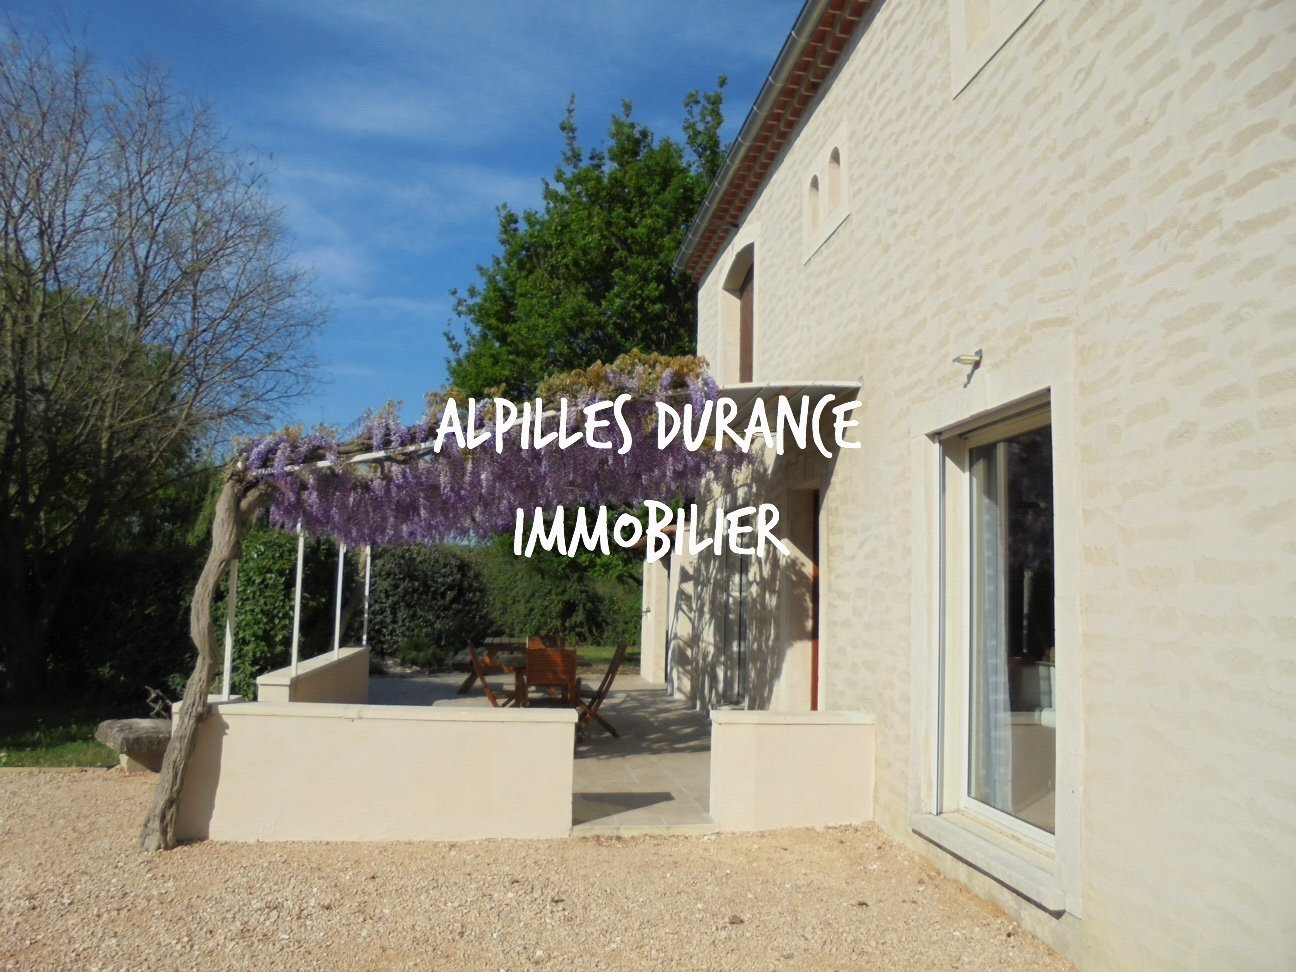 Noves: Country house with pool, 230m² hab. with garage, shelter 2 cars, warehouse of env.150